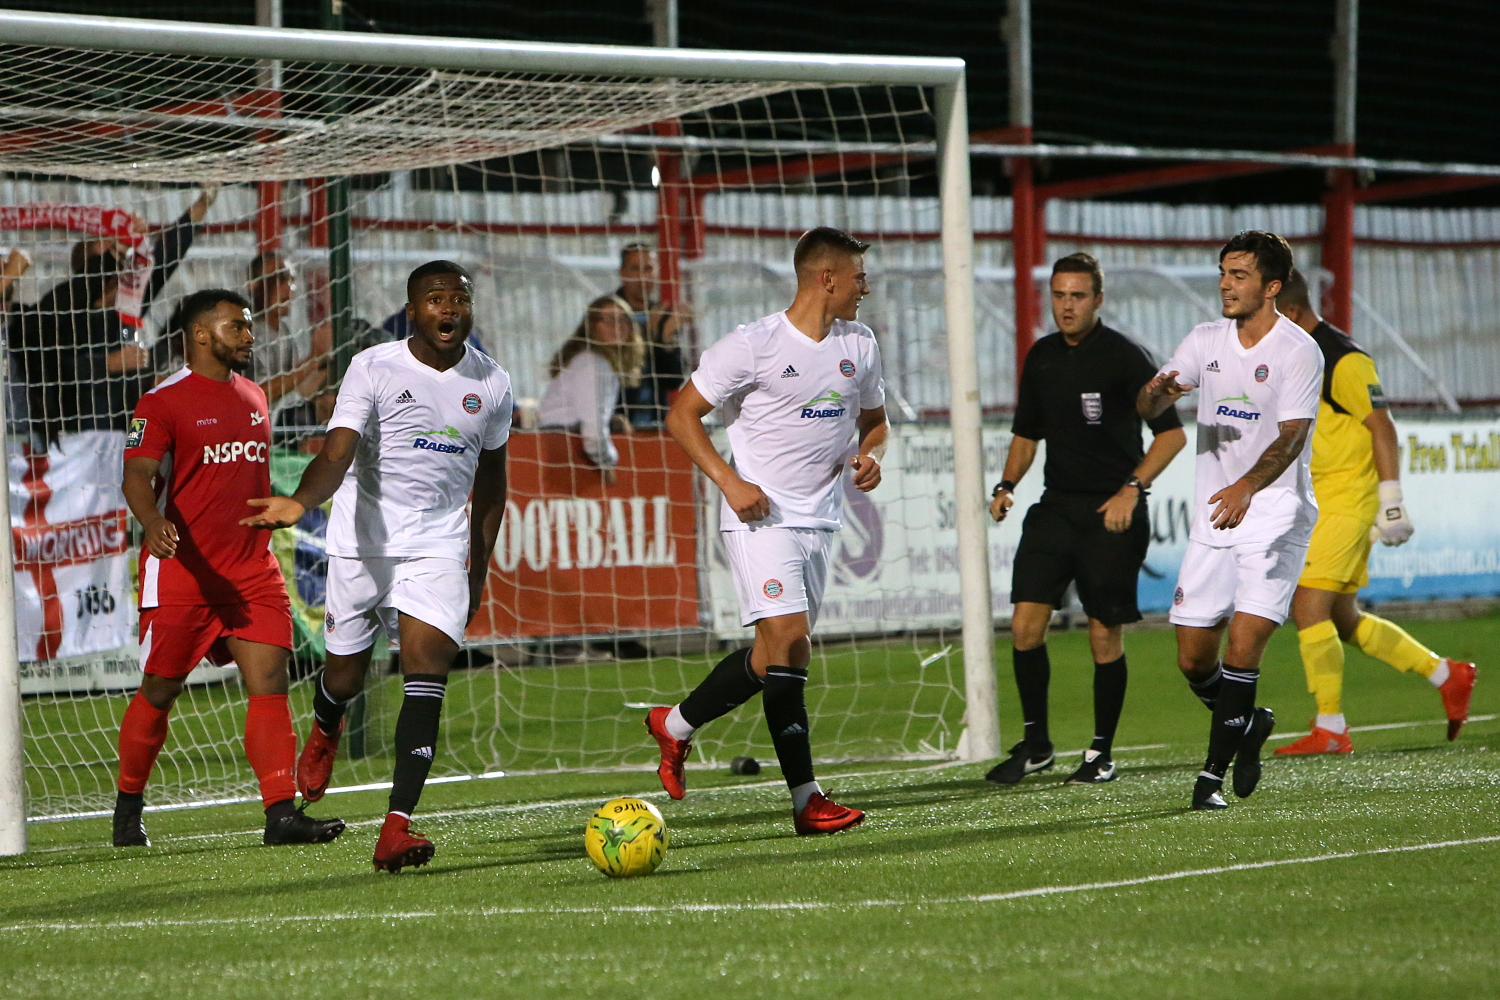 Read the full article - Confidence flowing as Worthing make perfect start